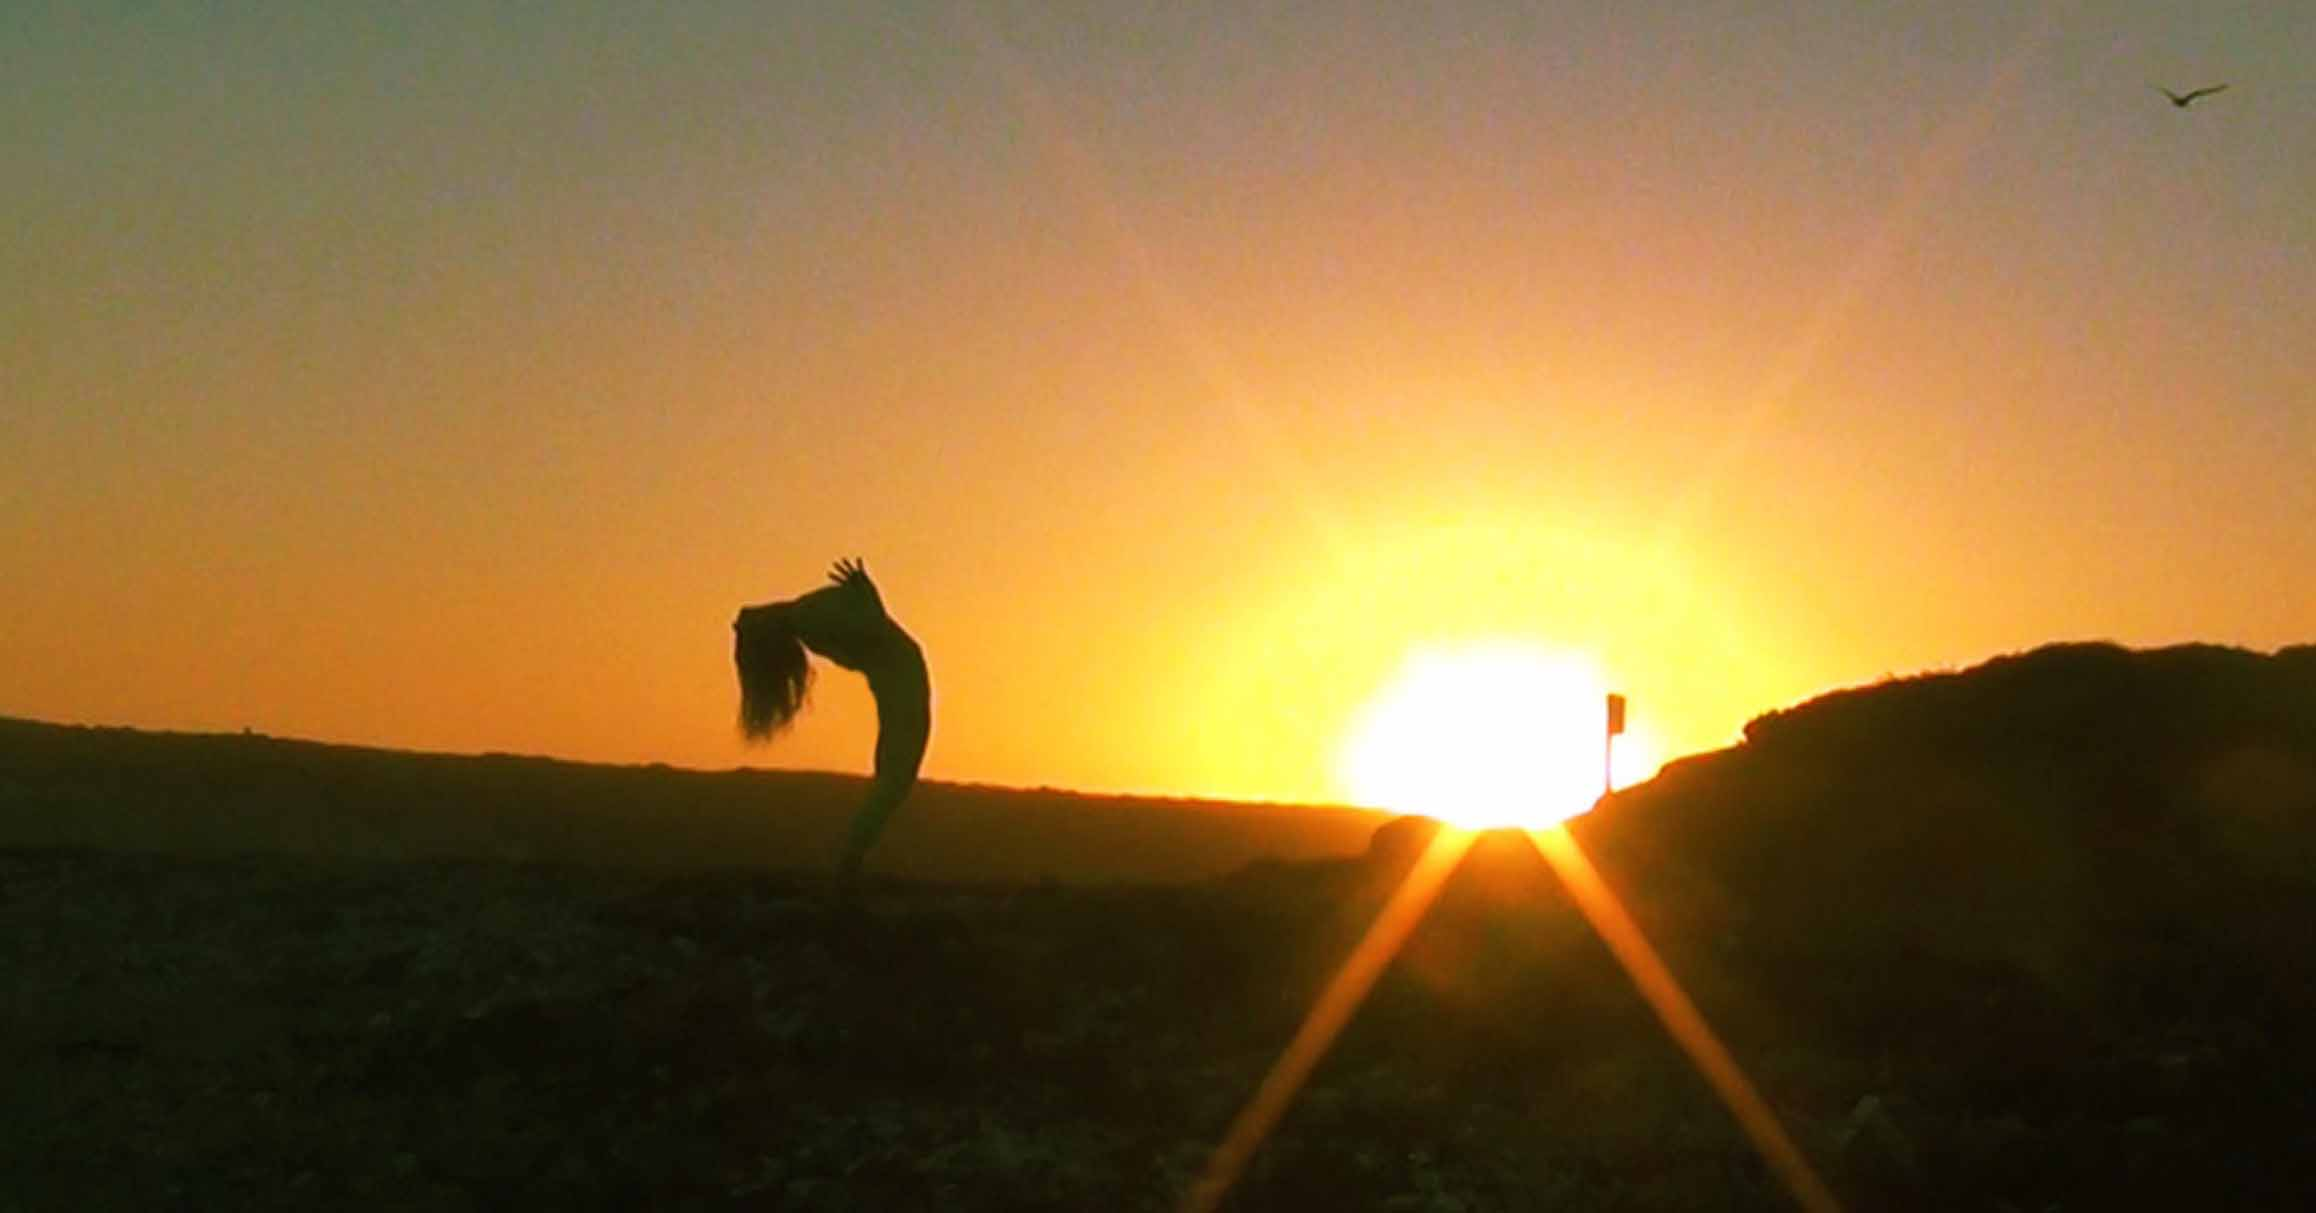 YOGA BADEN BEI WIEN - GIVING THANKS TO THIS PERFECT MOMENT, IN DEVOTION TO THE SUN